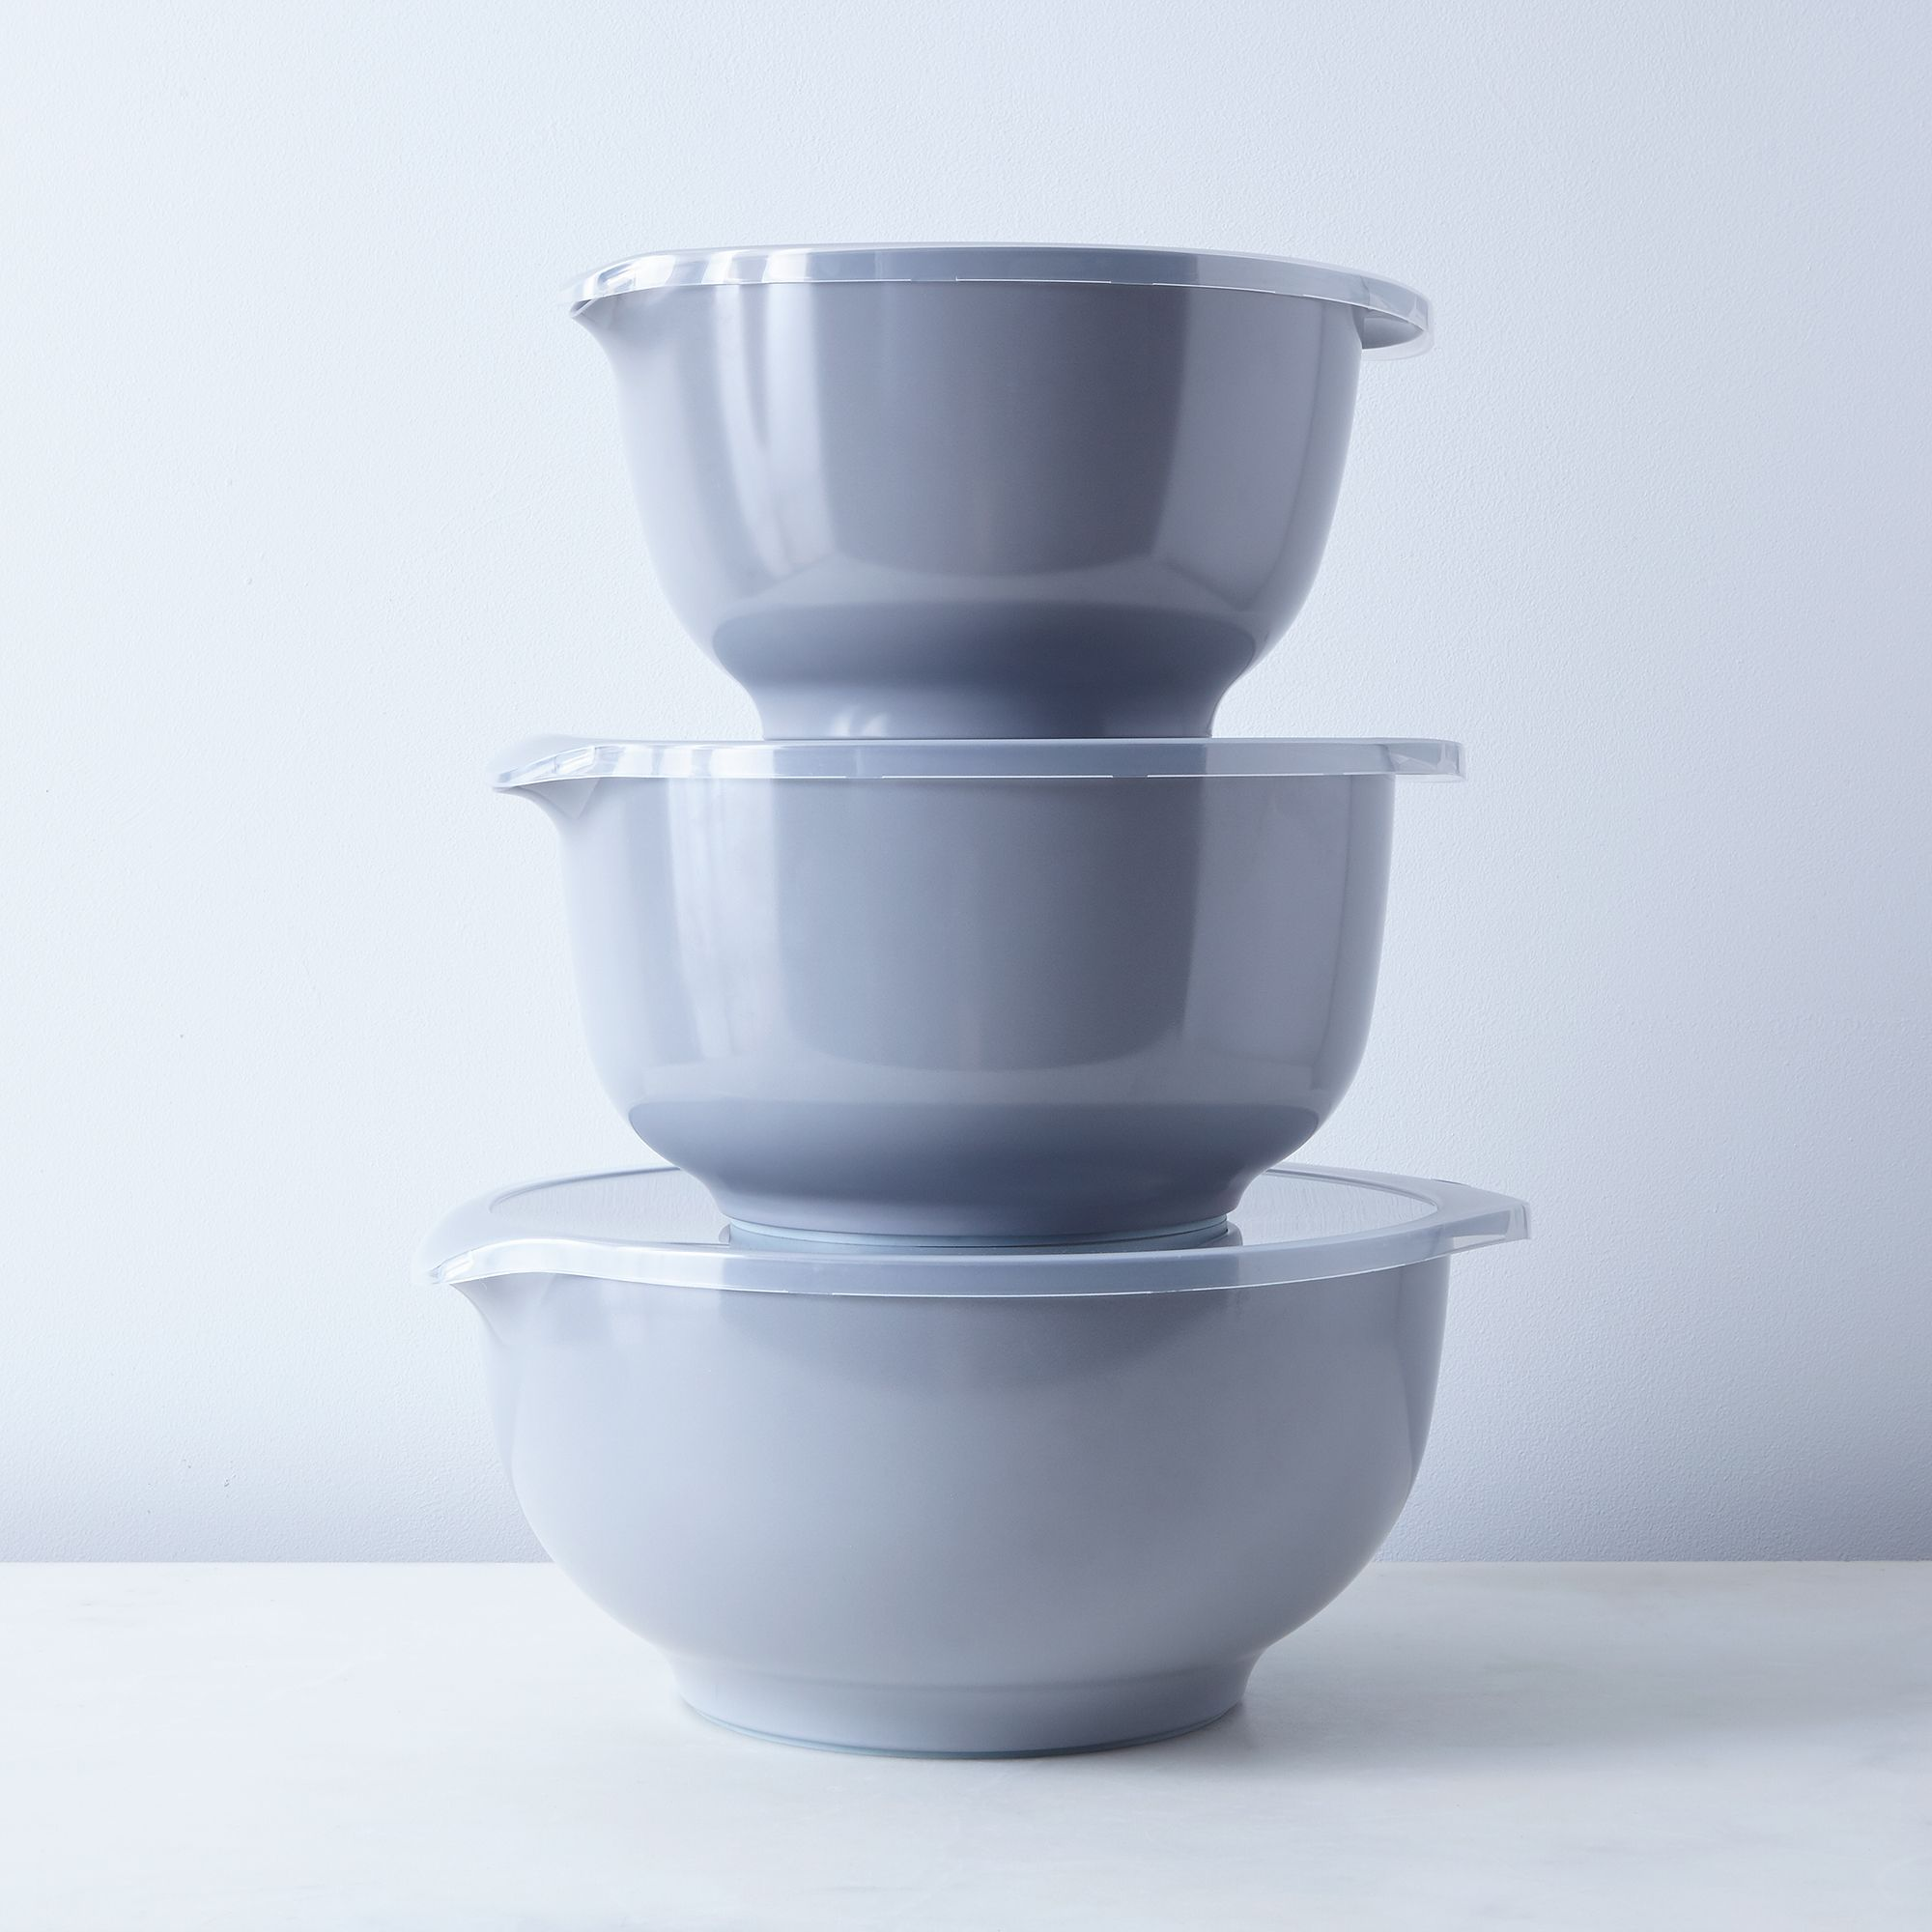 2e23f204 090f 4a5e b2a2 c48af7b008bd  2016 0805 rosti margarethe mixing bowl 3l with lid family gray silo rocky luten 458